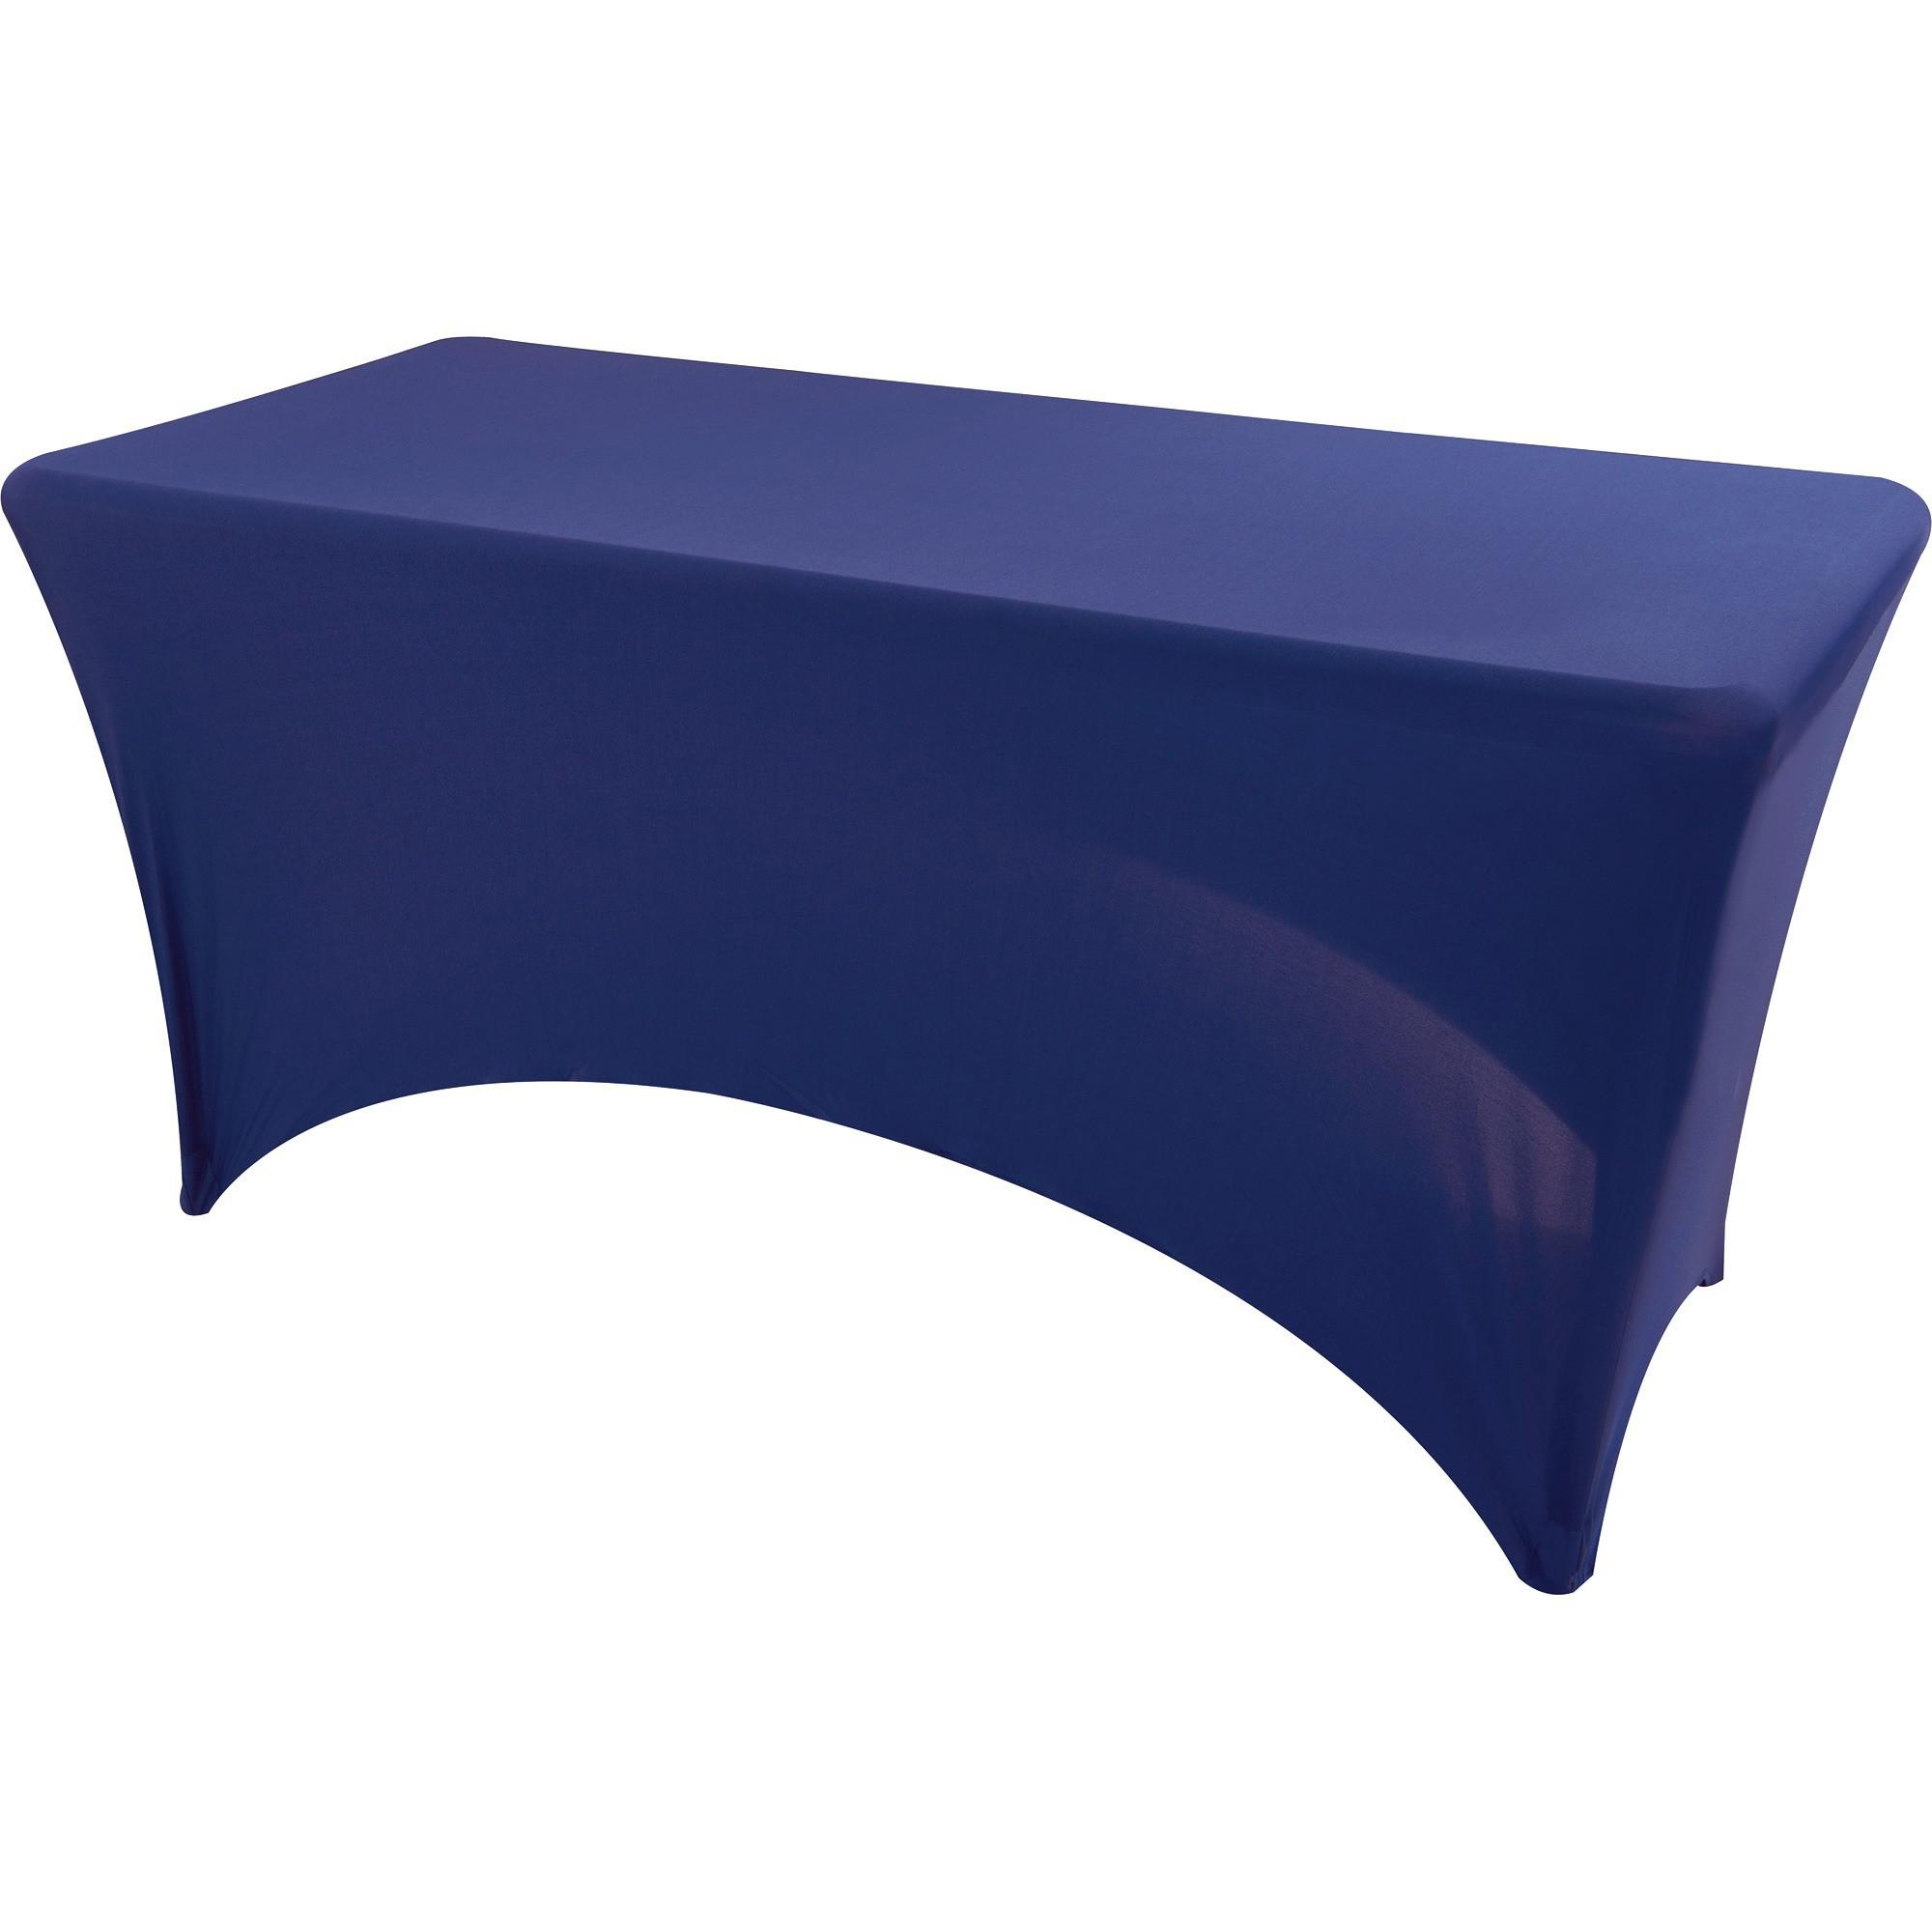 Stretch Fabric Table Cover